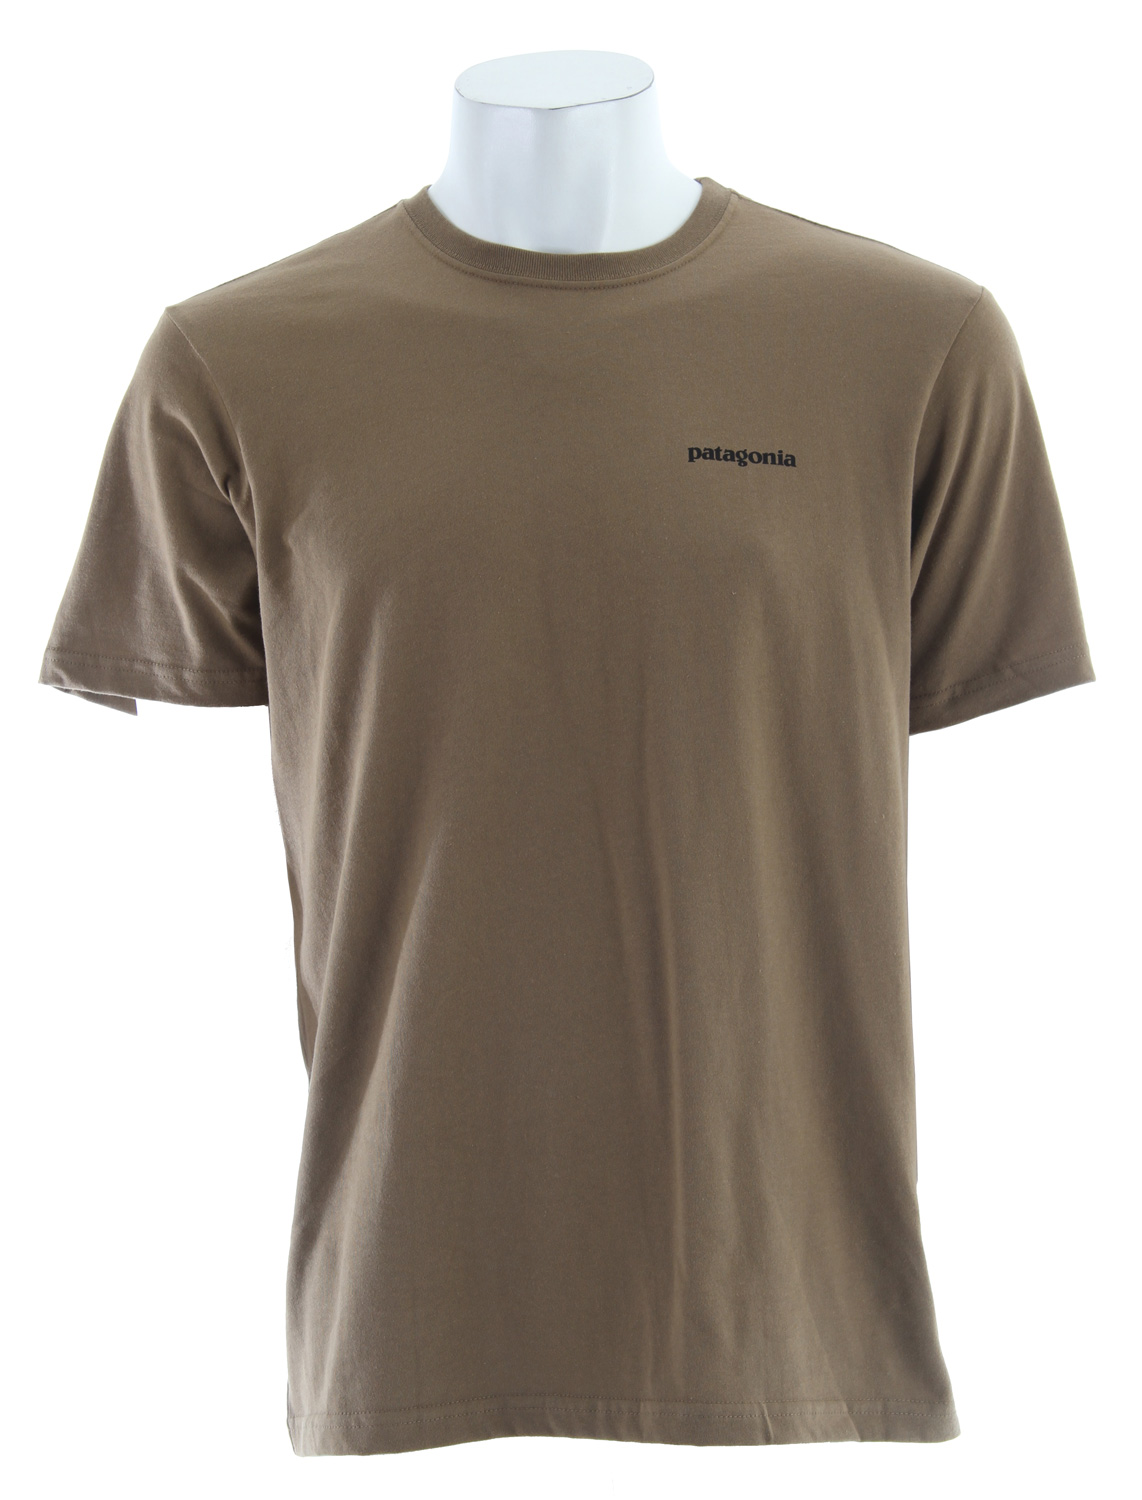 A classic design sporting the traditional Patagonia logo, the P-6 Logo T-Shirt embodies our heritage. The tee is made of our standard-weight 5.4-oz 100% organic cotton that is ringspun for softness. Taped shoulder seams and double stitching at sleeves and hem lend durability; coverstitched at neck and armholes for a clean finish.Key Features of the Patagonia P-6 Logo T-Shirt: Screen-print inks are PVC- and phthalate-free Taped shoulder seams for comfort 5.4-oz 100% organic cotton 196 g (6.9 oz) Made in USA. Organic cotton is produced using techniques that are healthy and safe for the environment and the people who work and live near the fields where it's grown. Organic cotton is never grown with synthetic chemical fertilizers, pesticides, herbicides or defoliants, nor is it genetically modified in any way. At Patagonia we seek to build the best product and cause no unnecessary harm. That's our mission statement, and it takes many forms. As it applies to making products, we work hard to source materials and use processes that are less harmful to the Earth without compromising quality. Because to us, quality is not only how well a product performs and holds up, but also how it's made. - $23.95